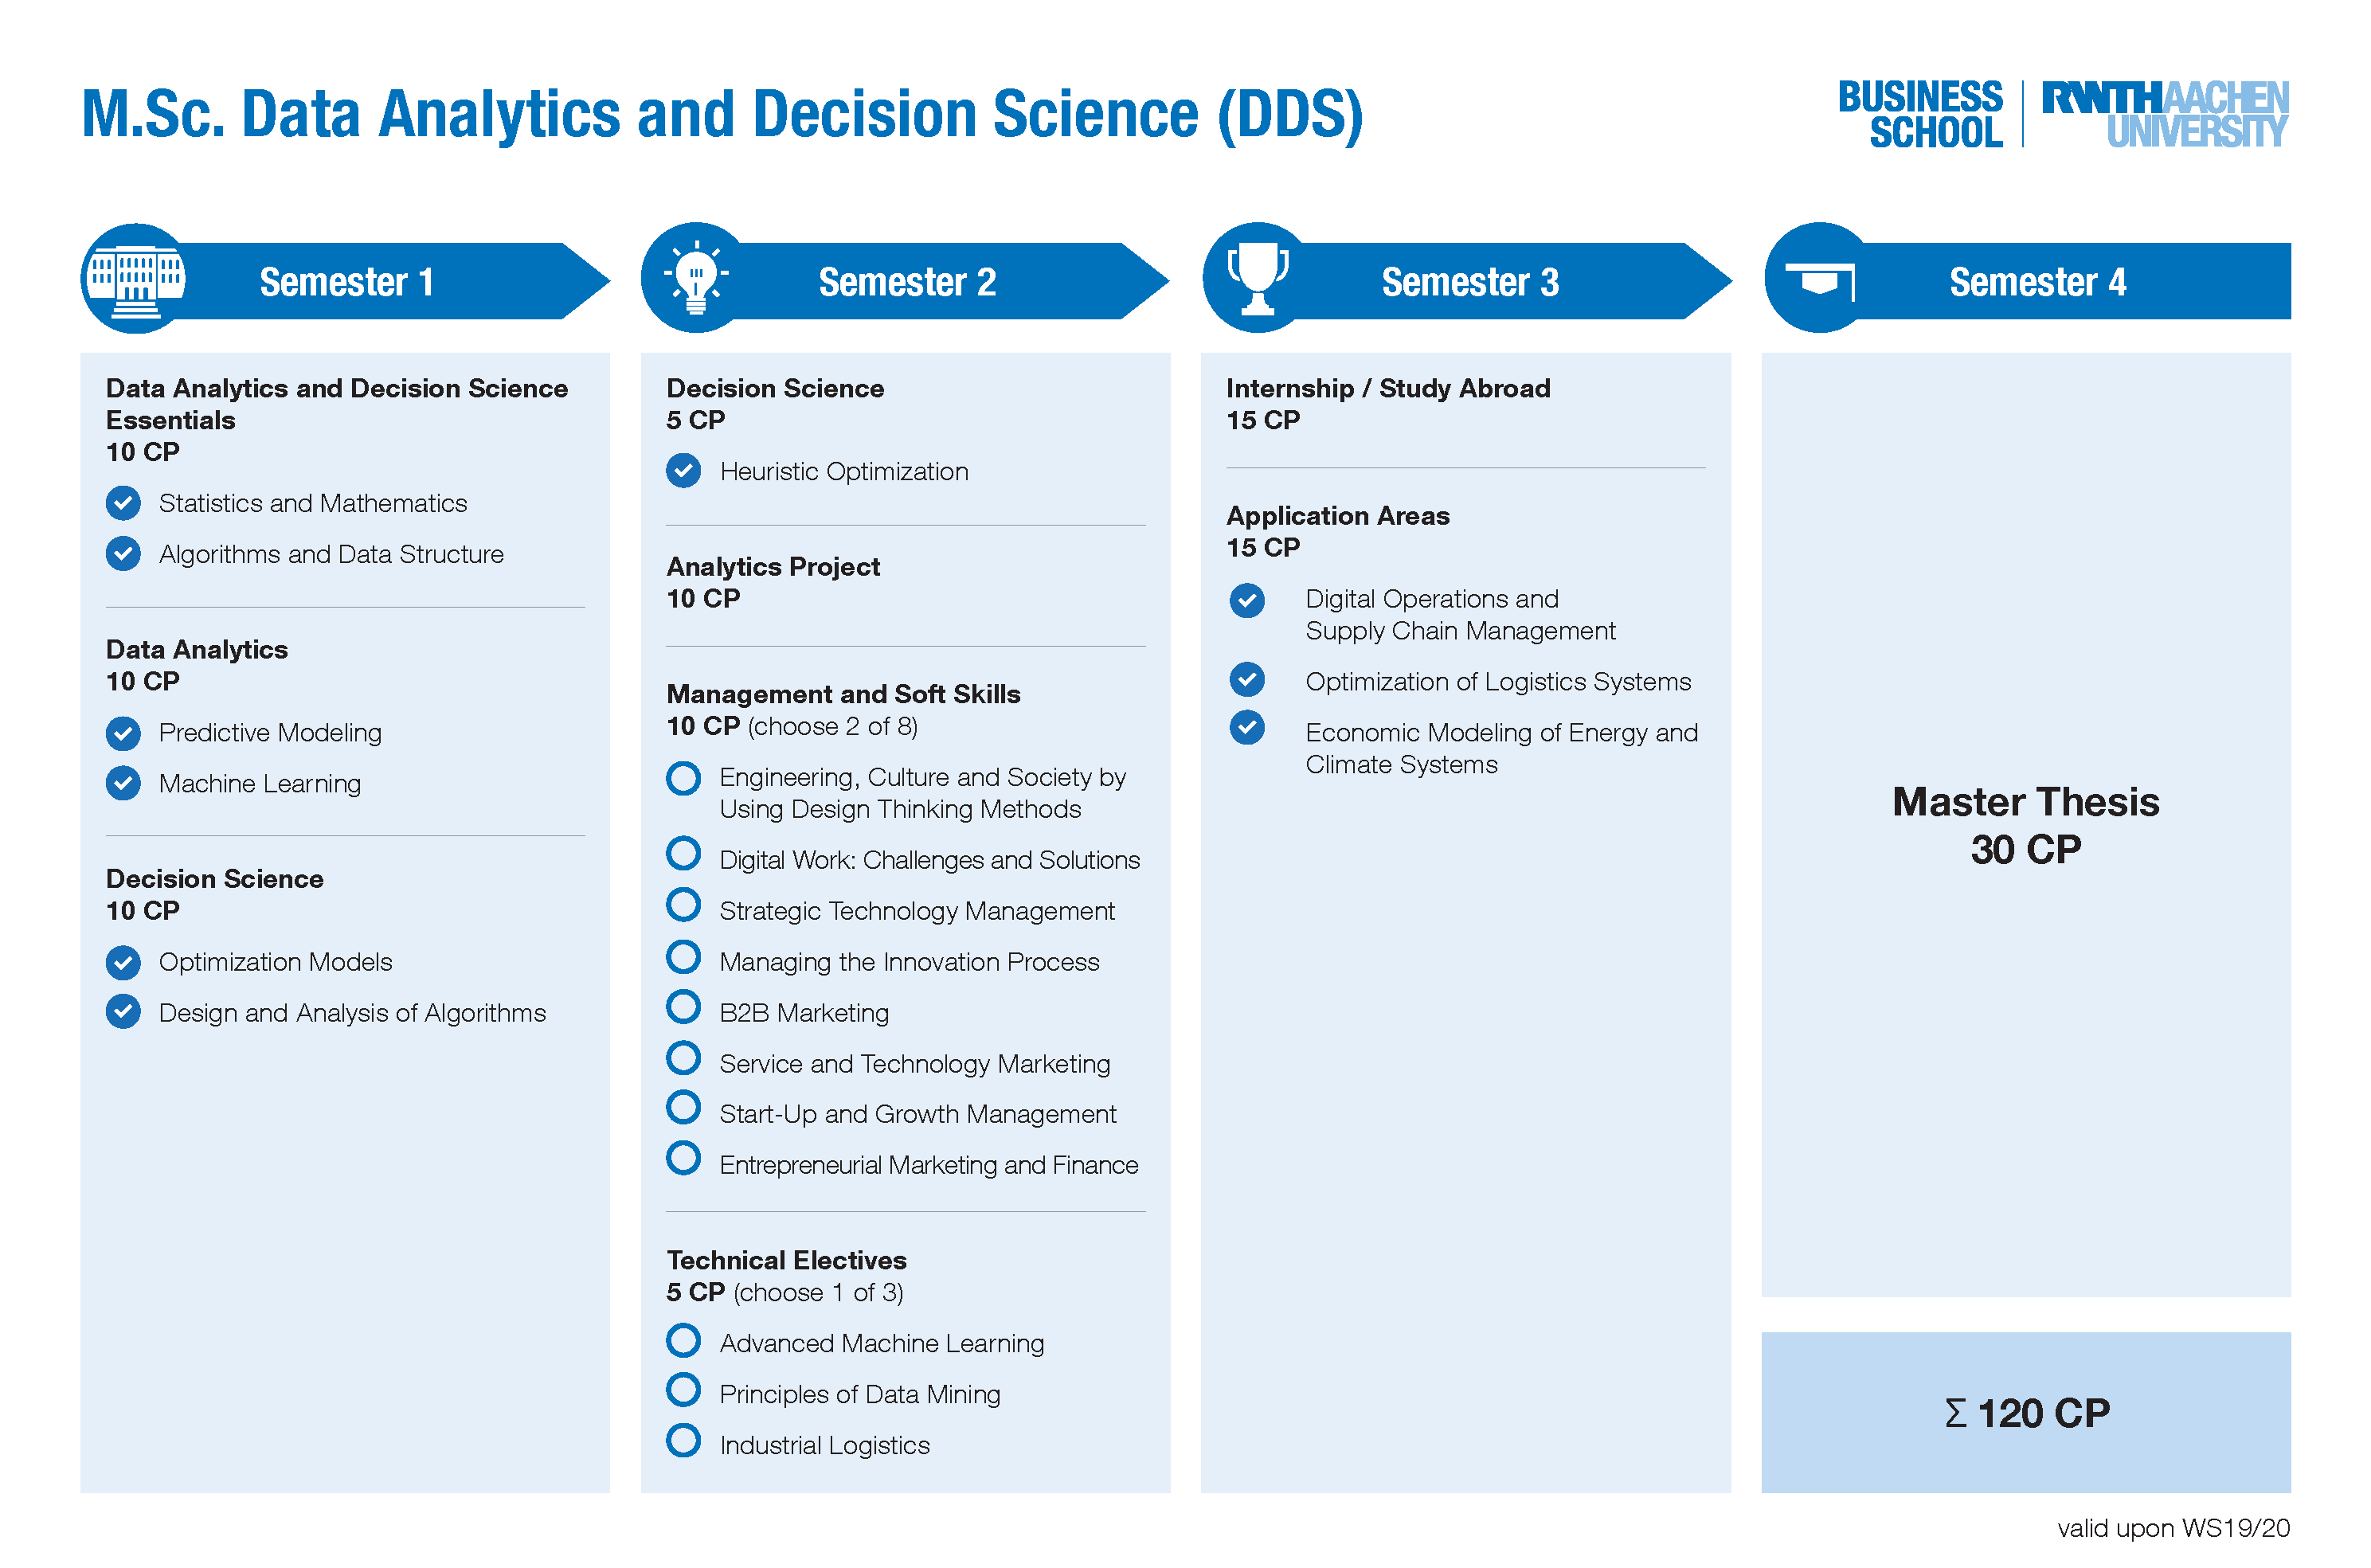 M  Sc  Data Analytics and Decision Science | RWTH Business